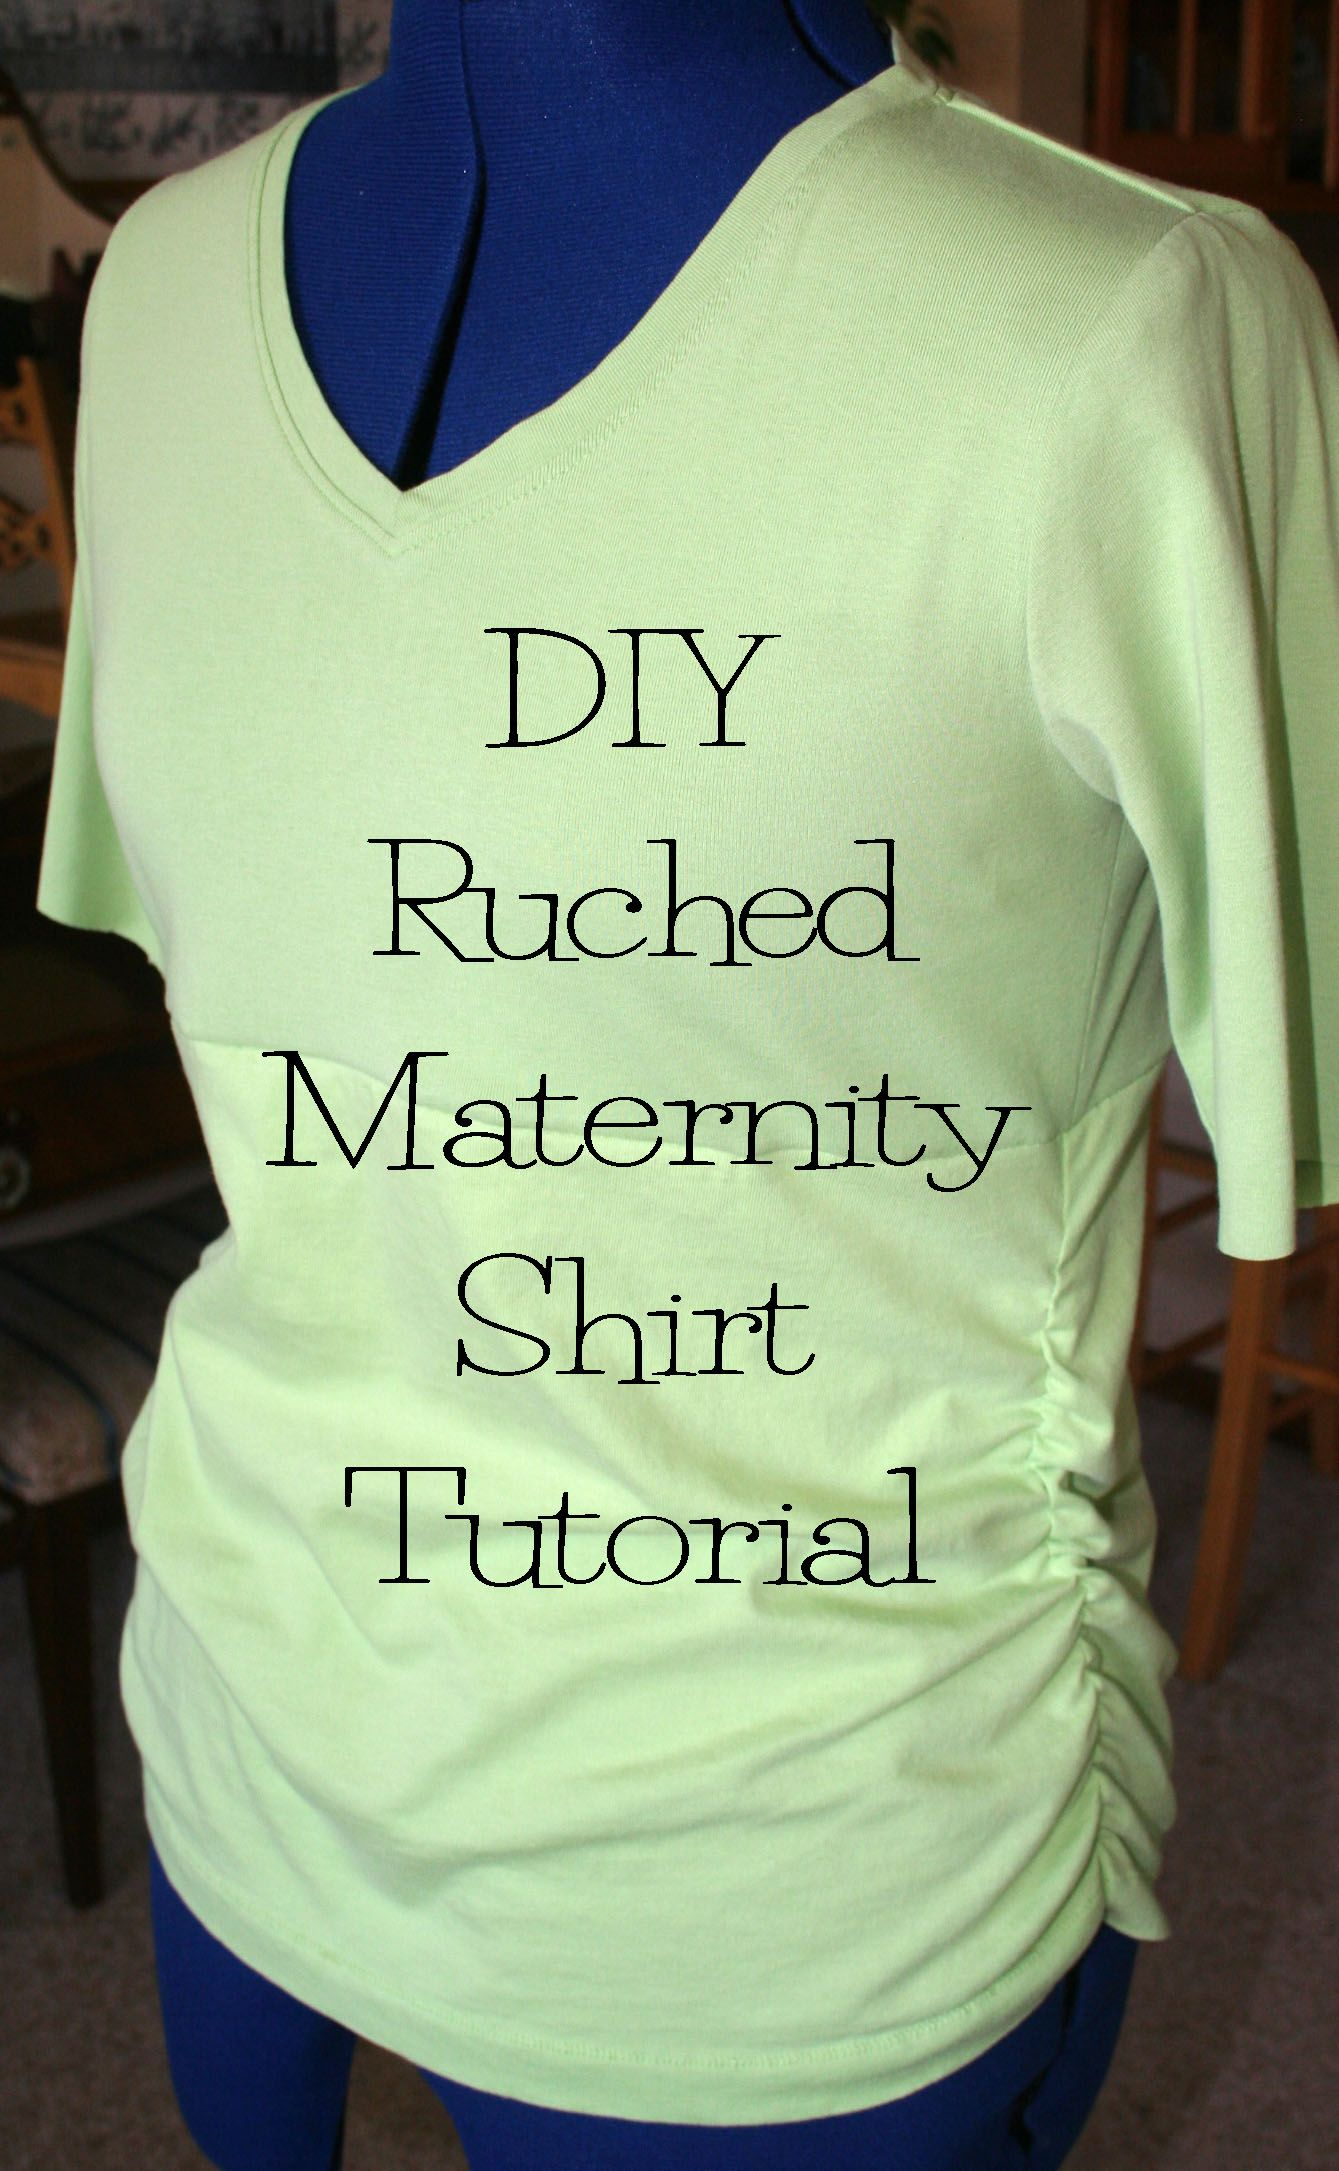 Diy Maternity Clothes Diy Ruched Maternity Shirt Tutorial In 2018 Baby Stuff